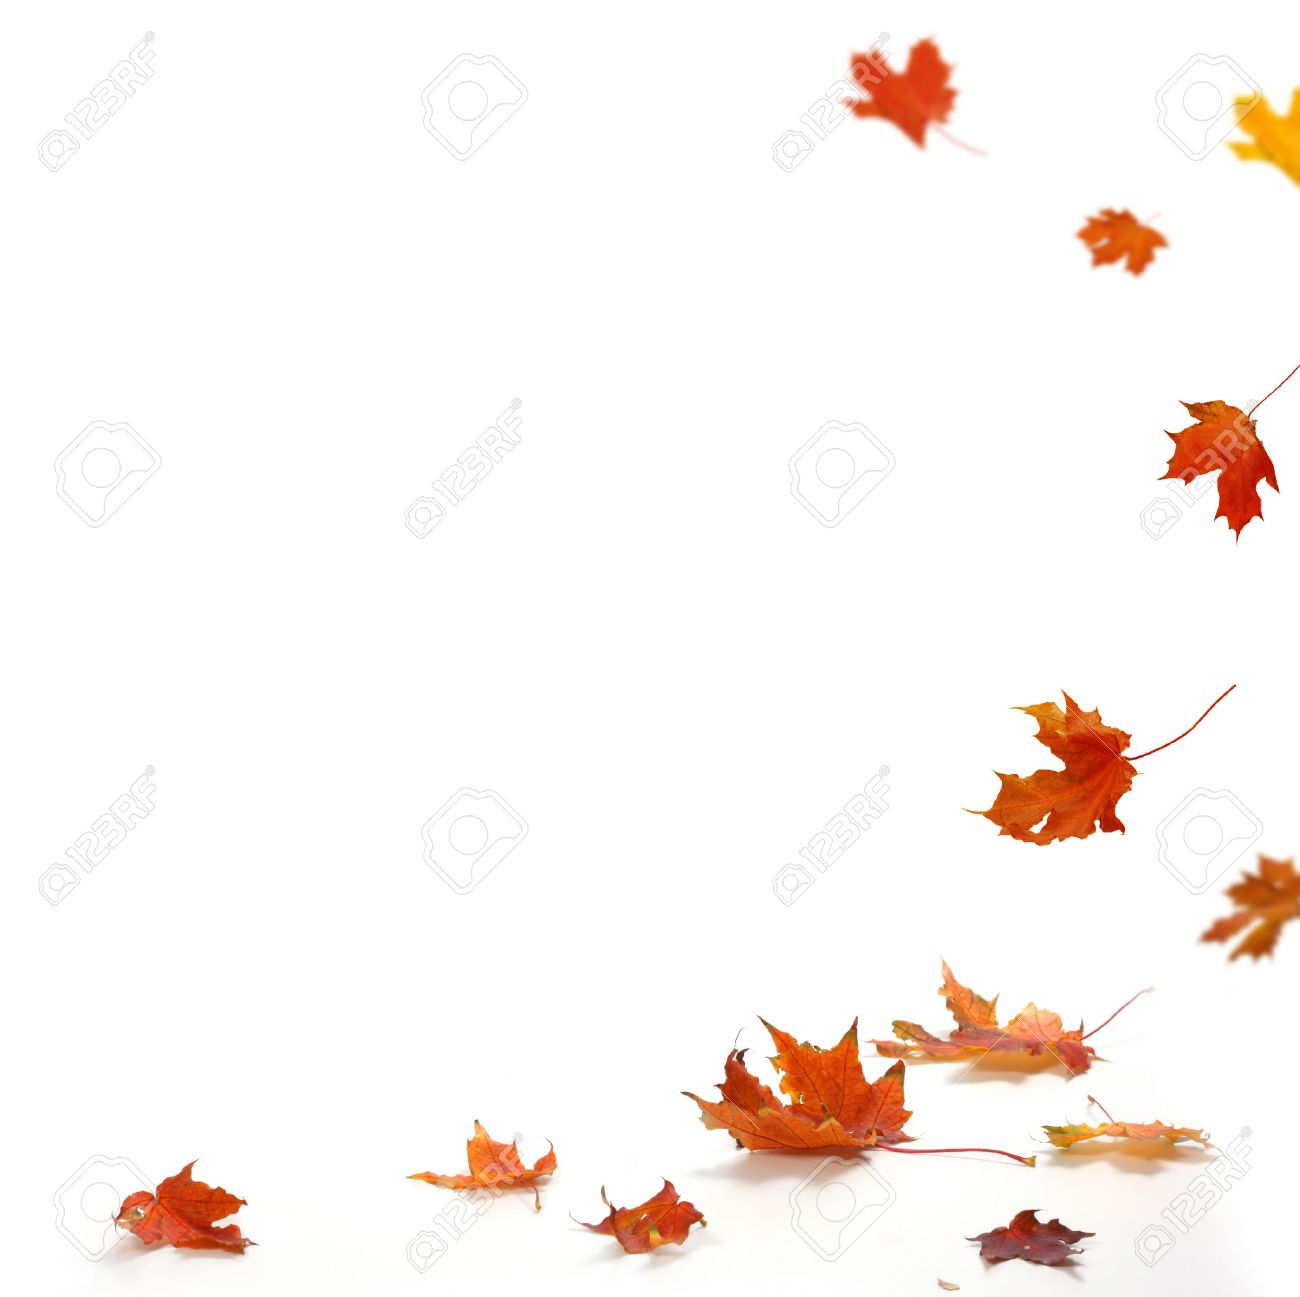 Isolated autumn leaves Stock Photo - 23109953